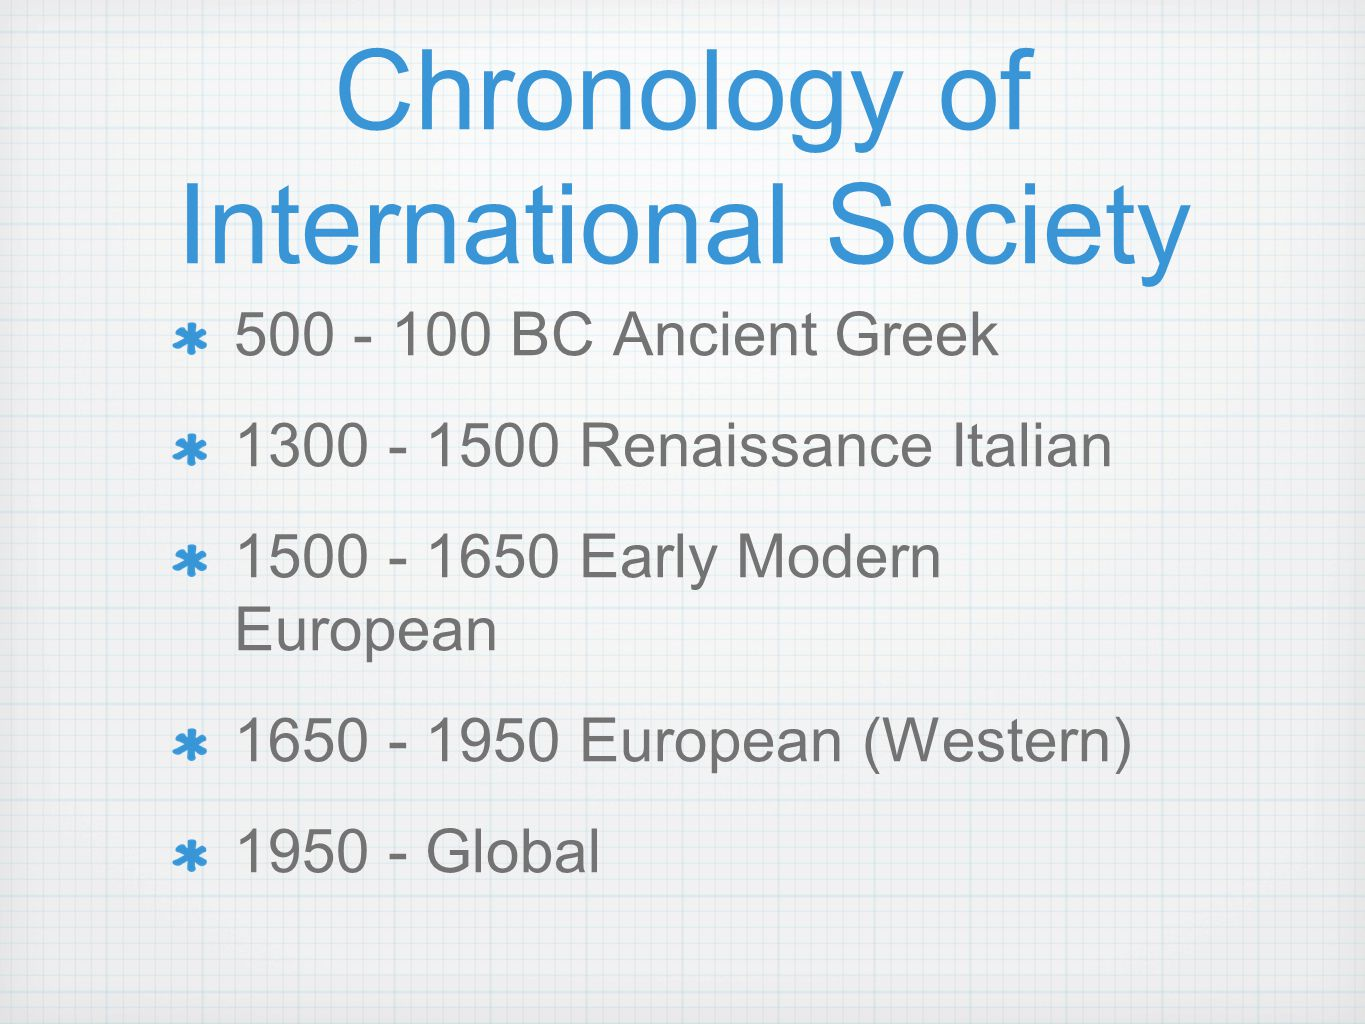 Chronology of International Society